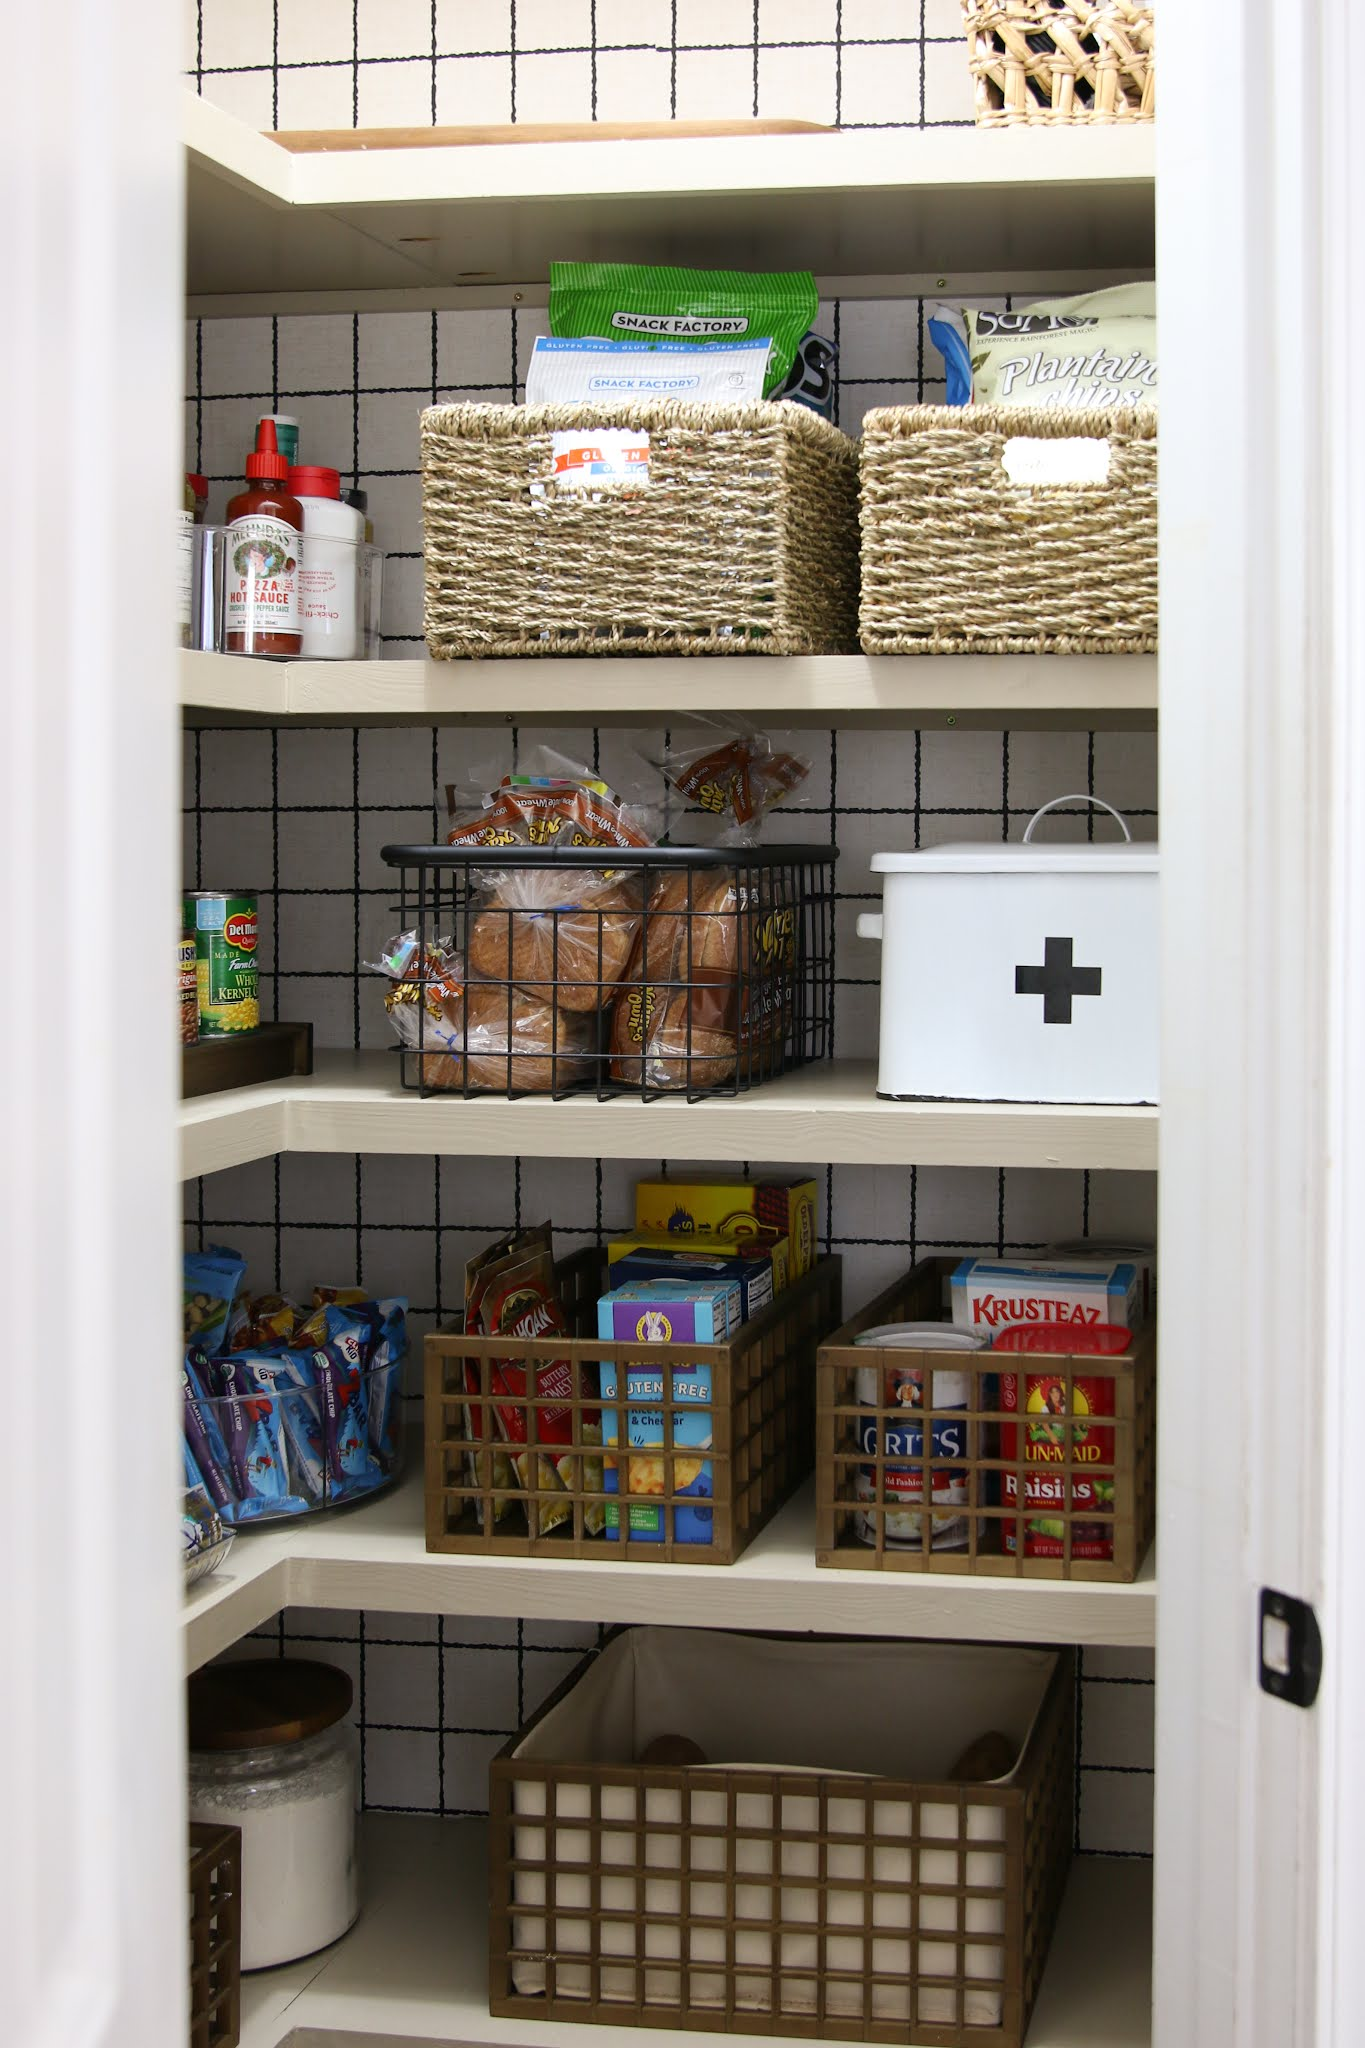 How to Build Shelving in a Corner Pantry Plus Pantry Sources!